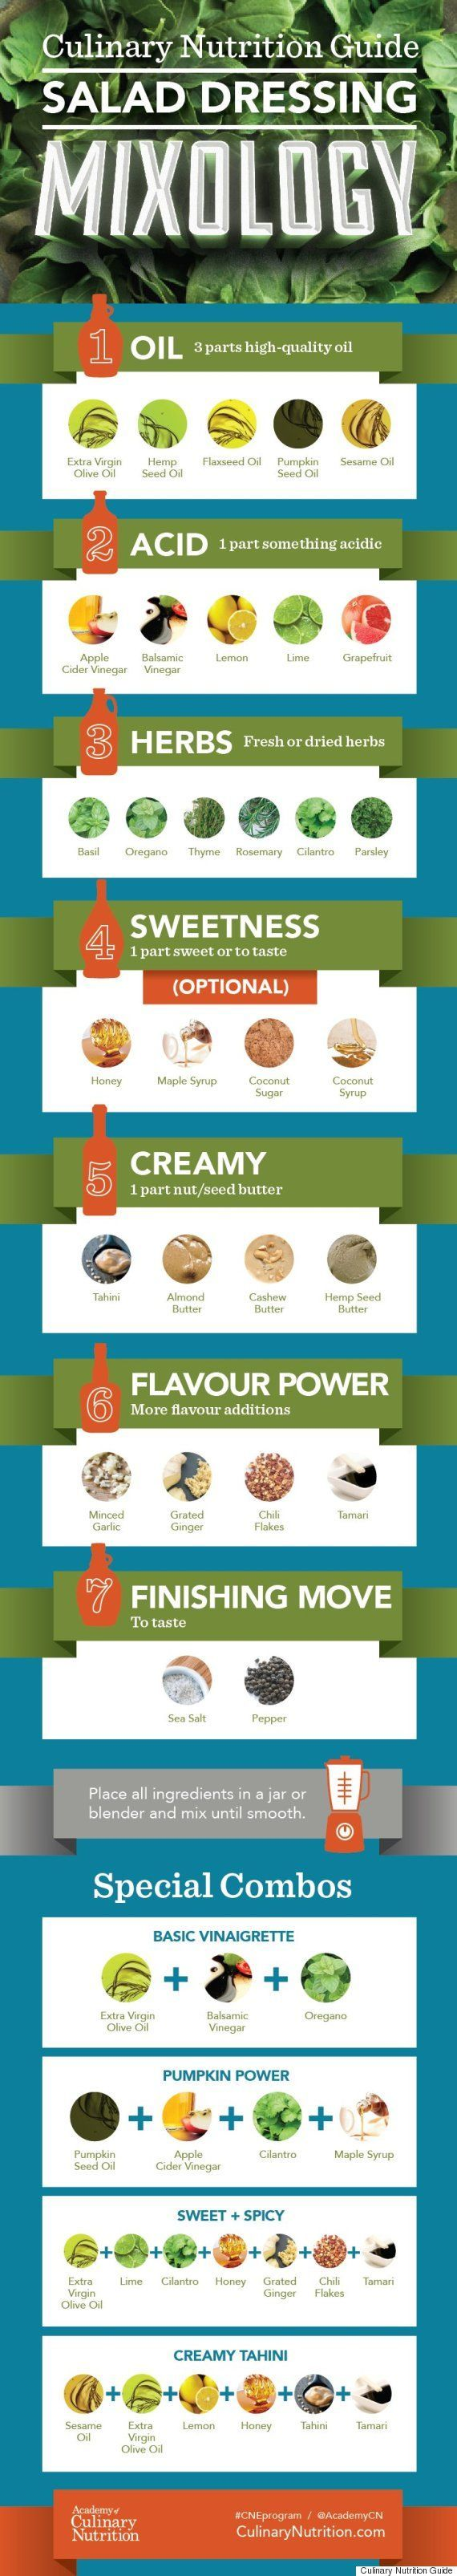 How To Make Salad Dressing Without A Recipe